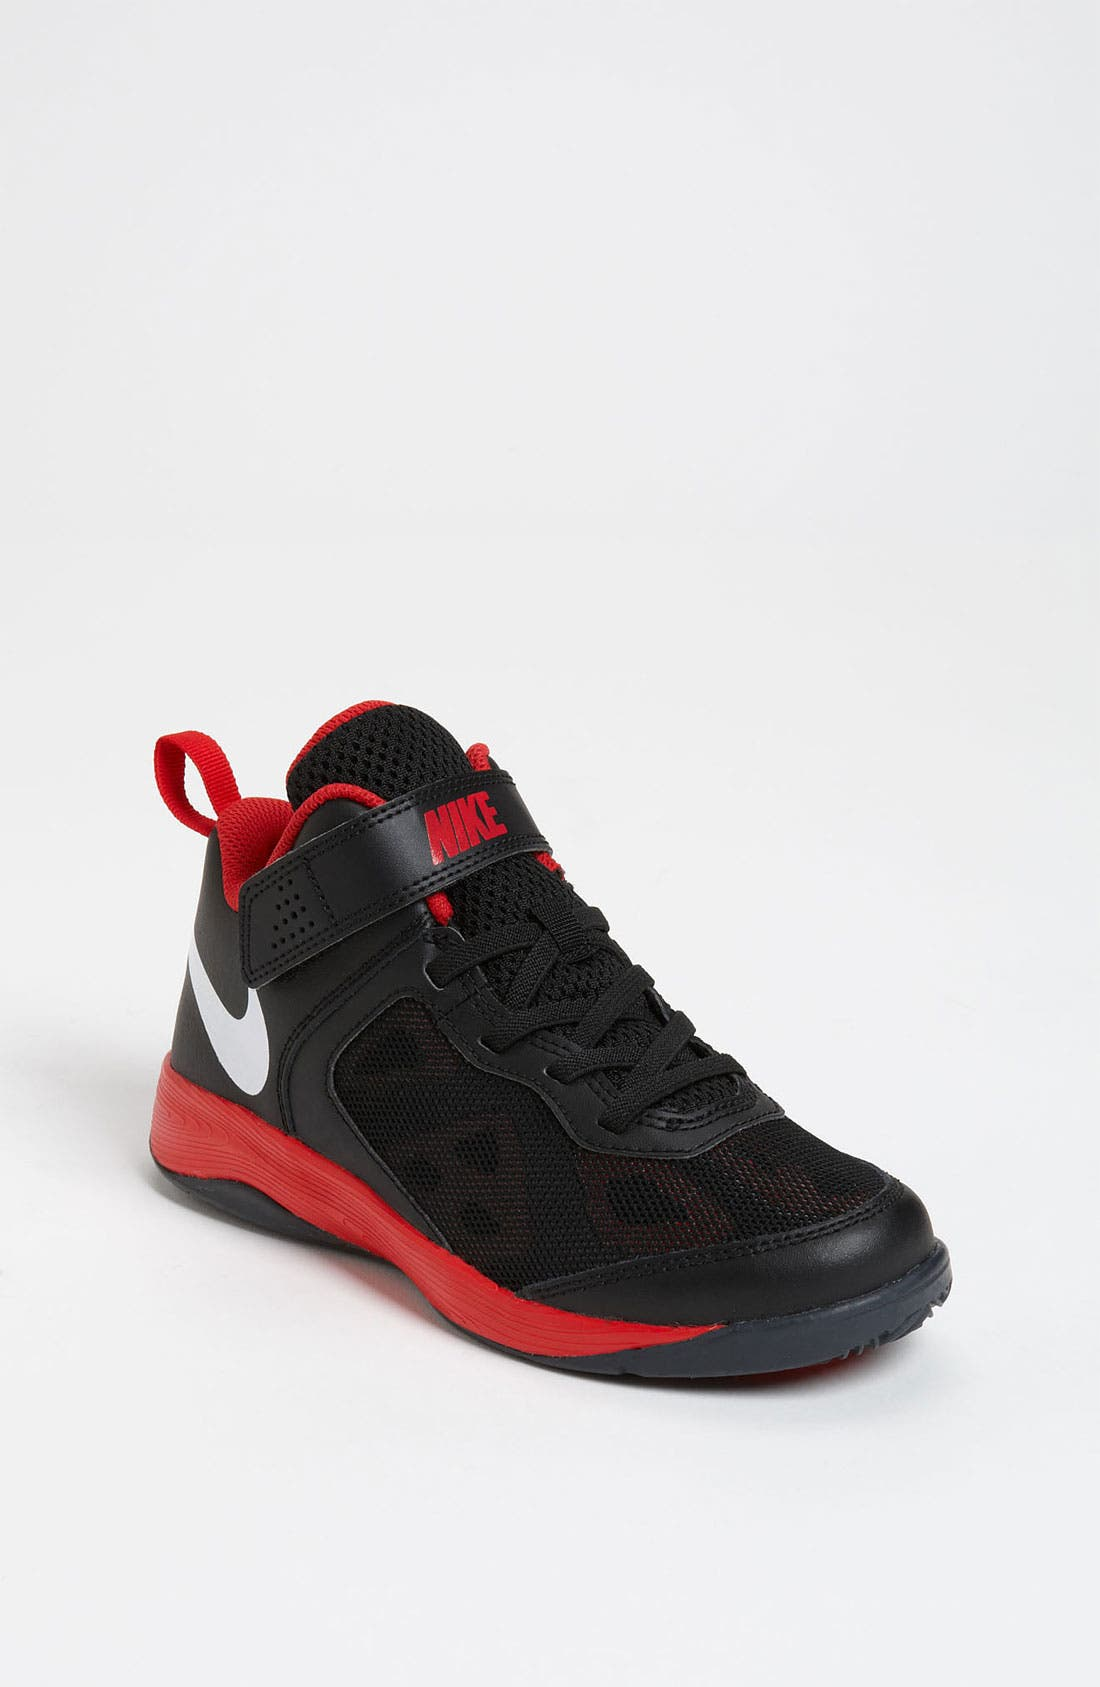 Alternate Image 1 Selected - Nike 'Fusion' Basketball Shoe (Toddler & Little Kid)